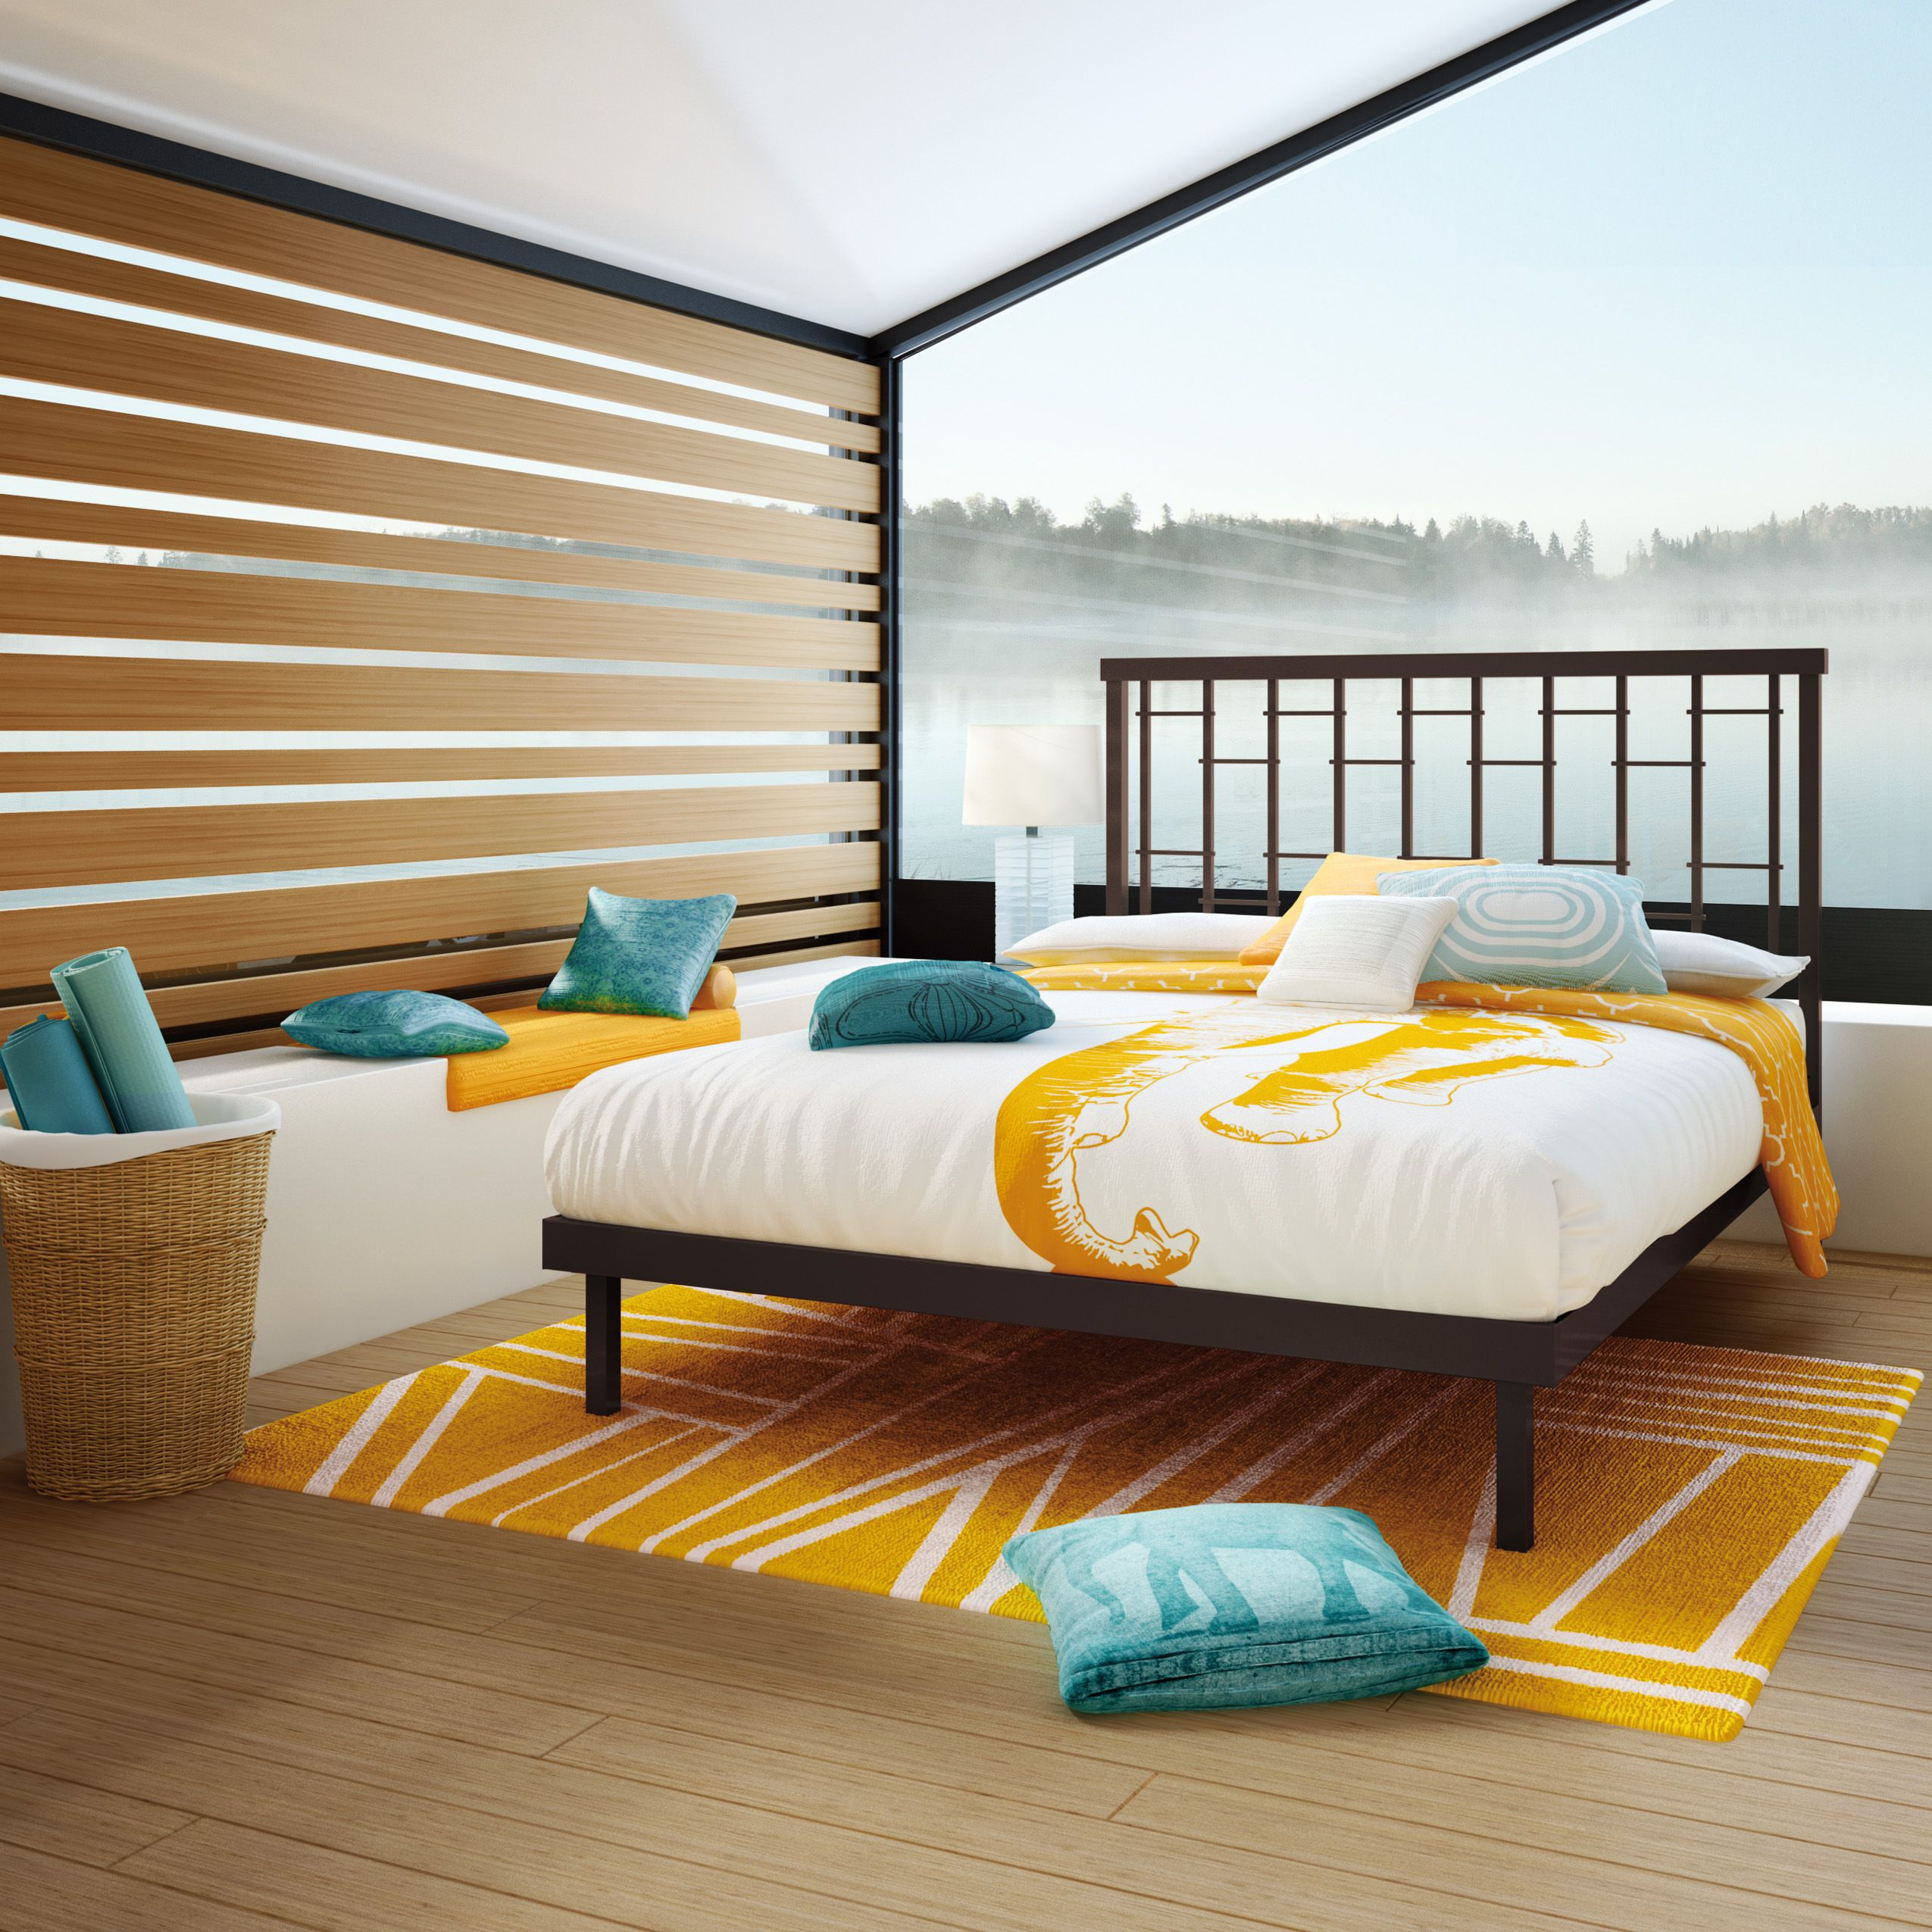 Lovely AMISCO   Mantra Bed (12370)   Furniture   Bedroom   Perfect Balance  Collection